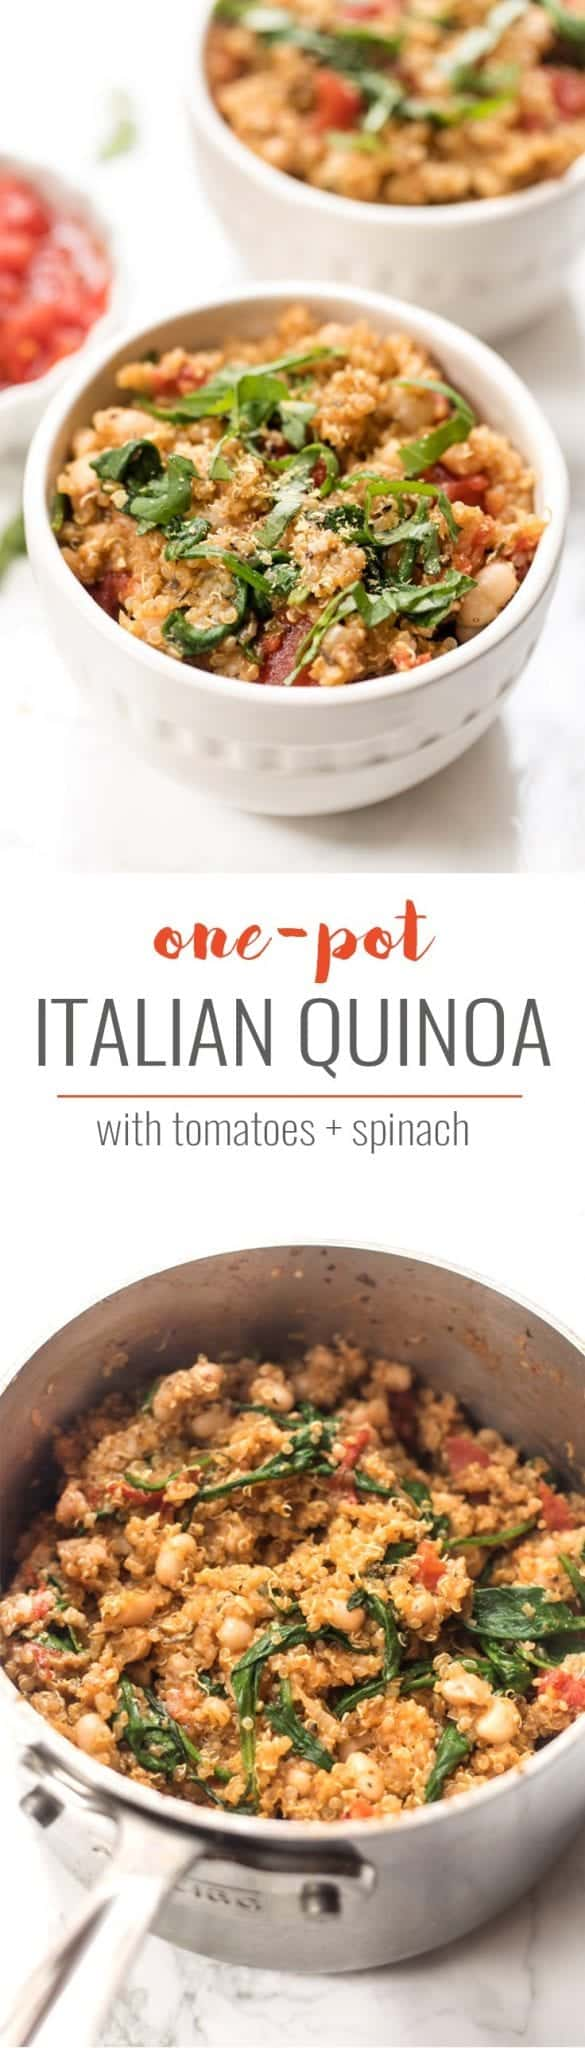 one pot italian quinoa with spinach and tomatoes